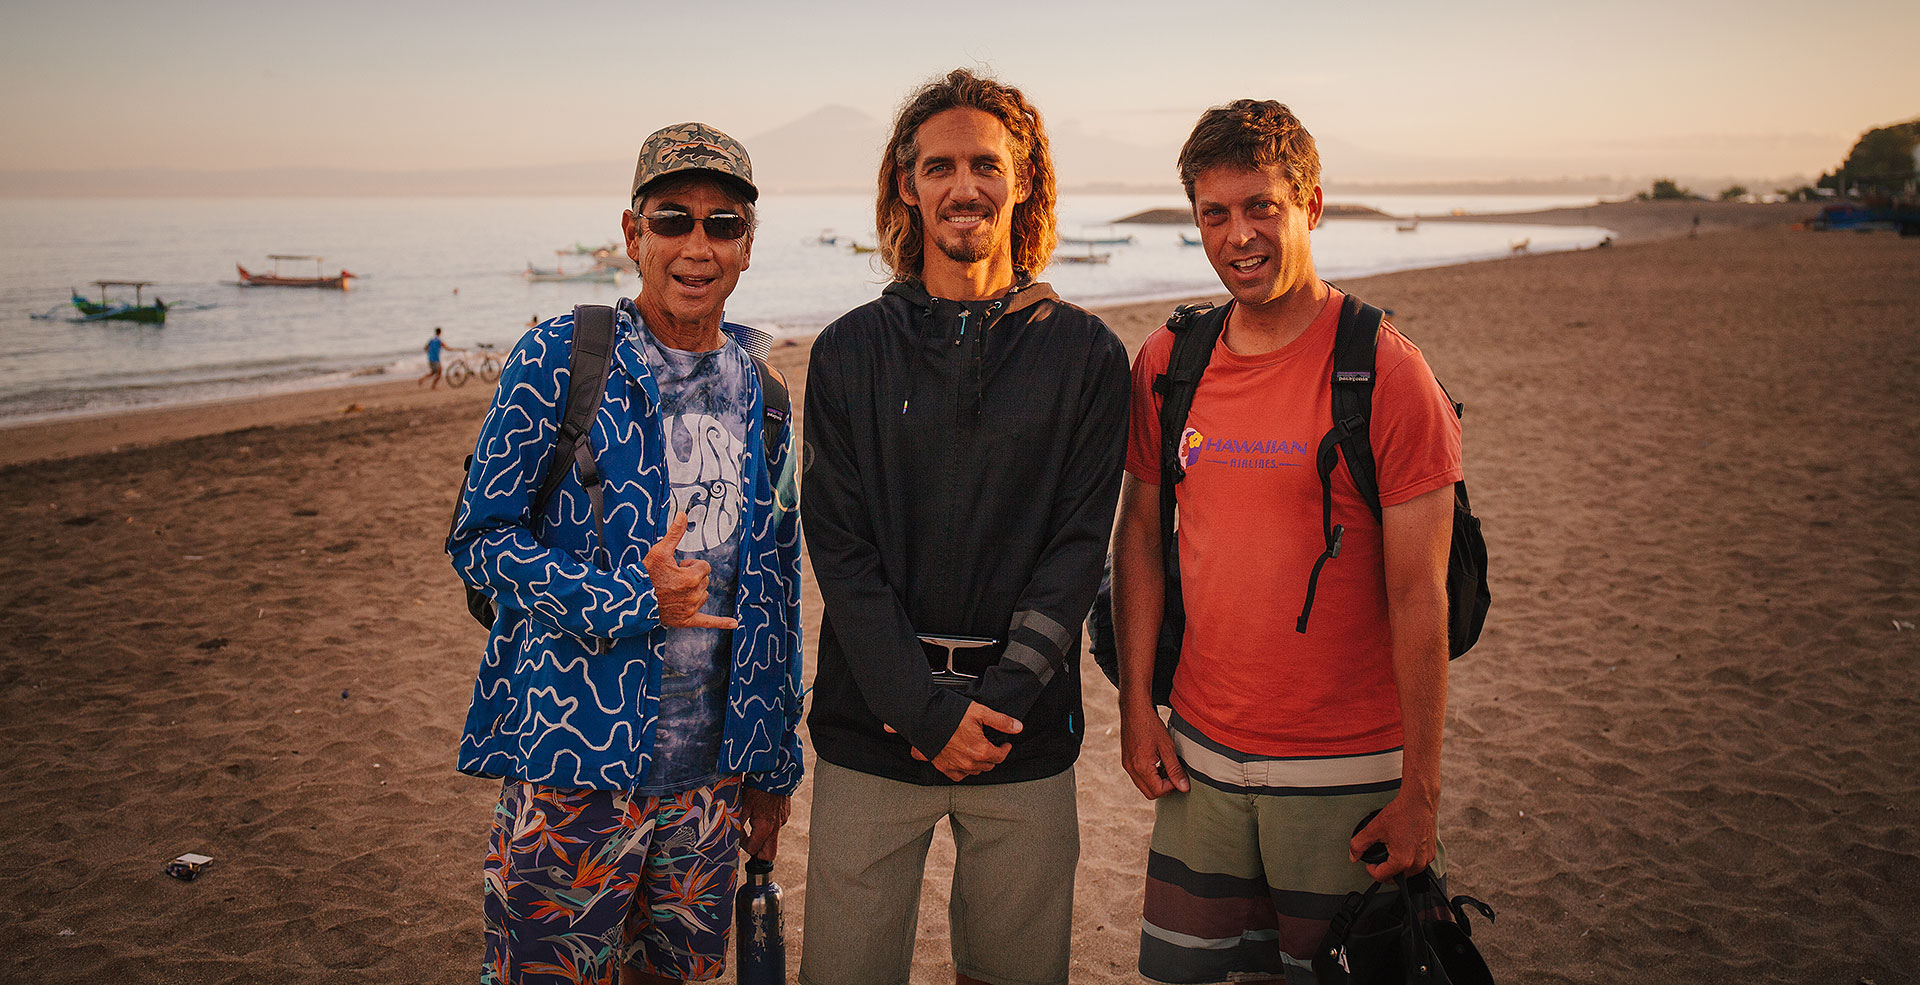 On assignment with Gerry Lopez and Rob Machado in Indonesia / Photo by Tim Russo